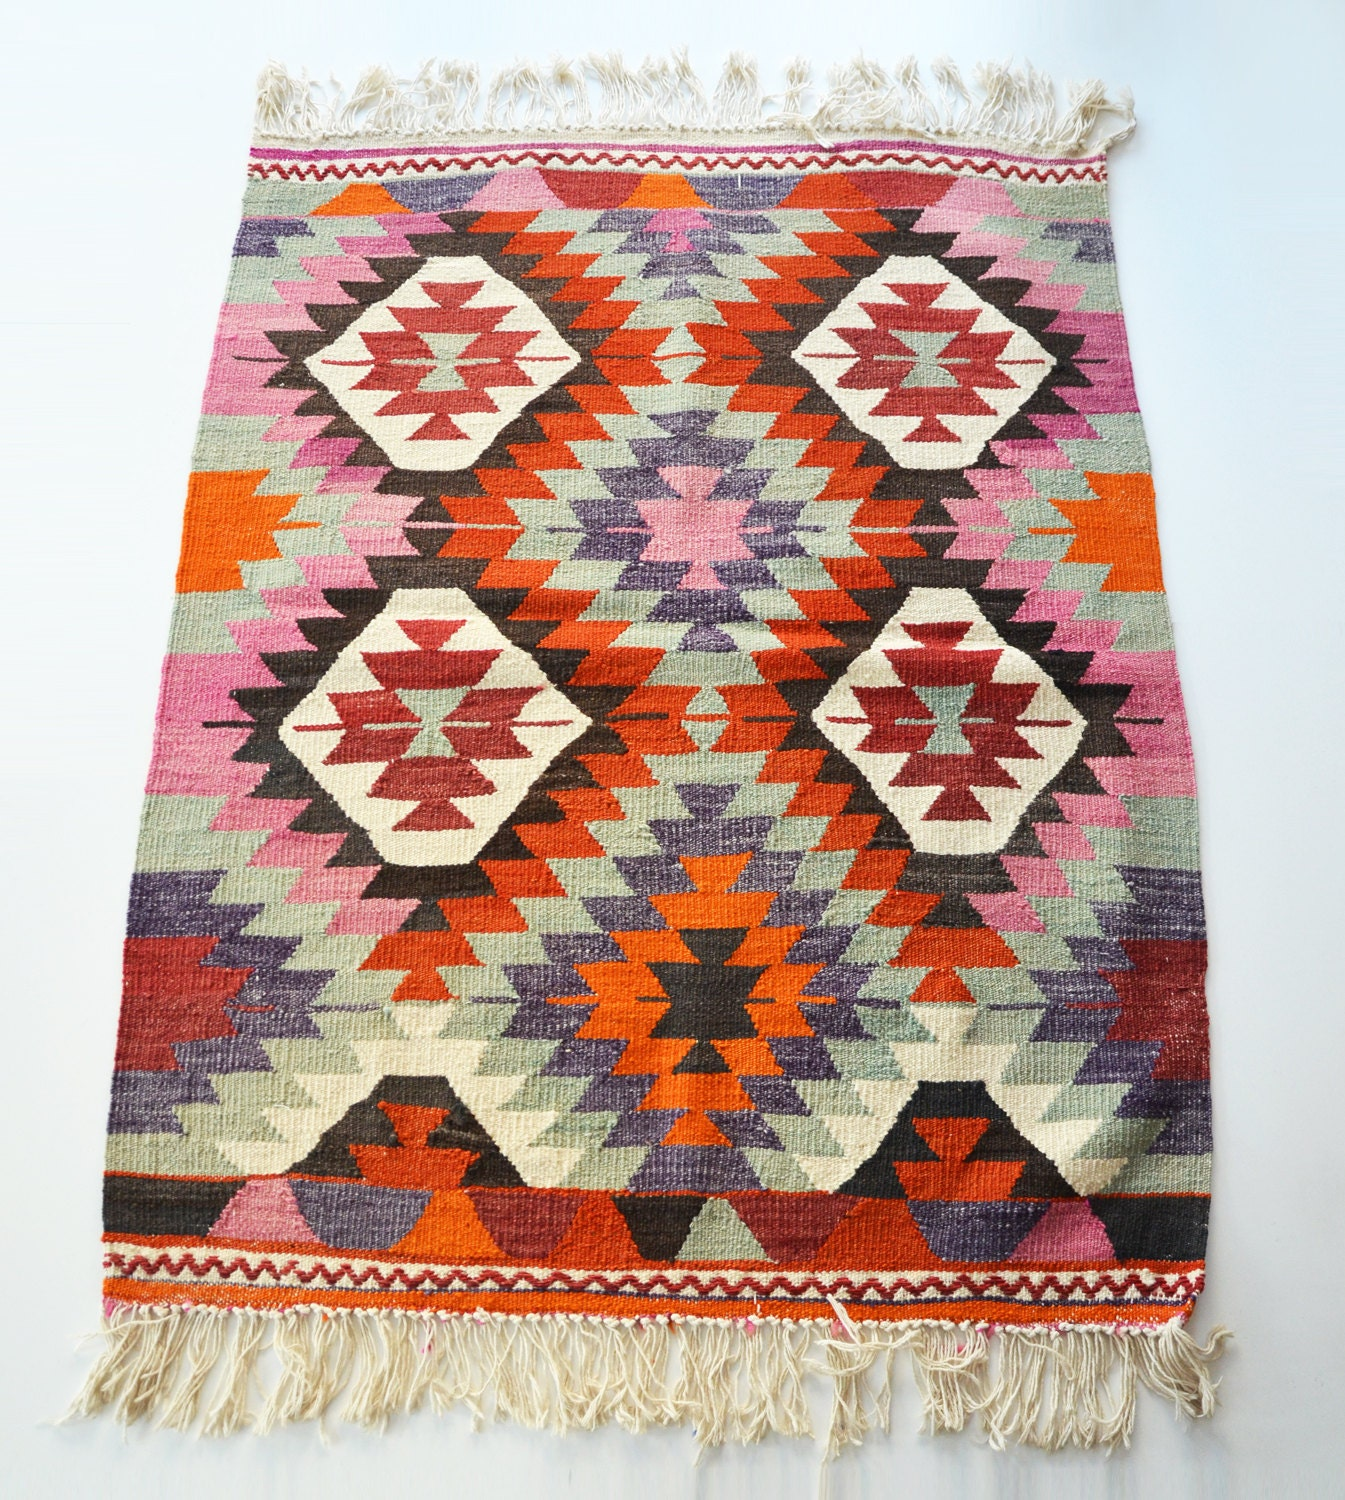 Sukan / VINTAGE Turkish Kilim Rug Carpet Handwoven Kilim